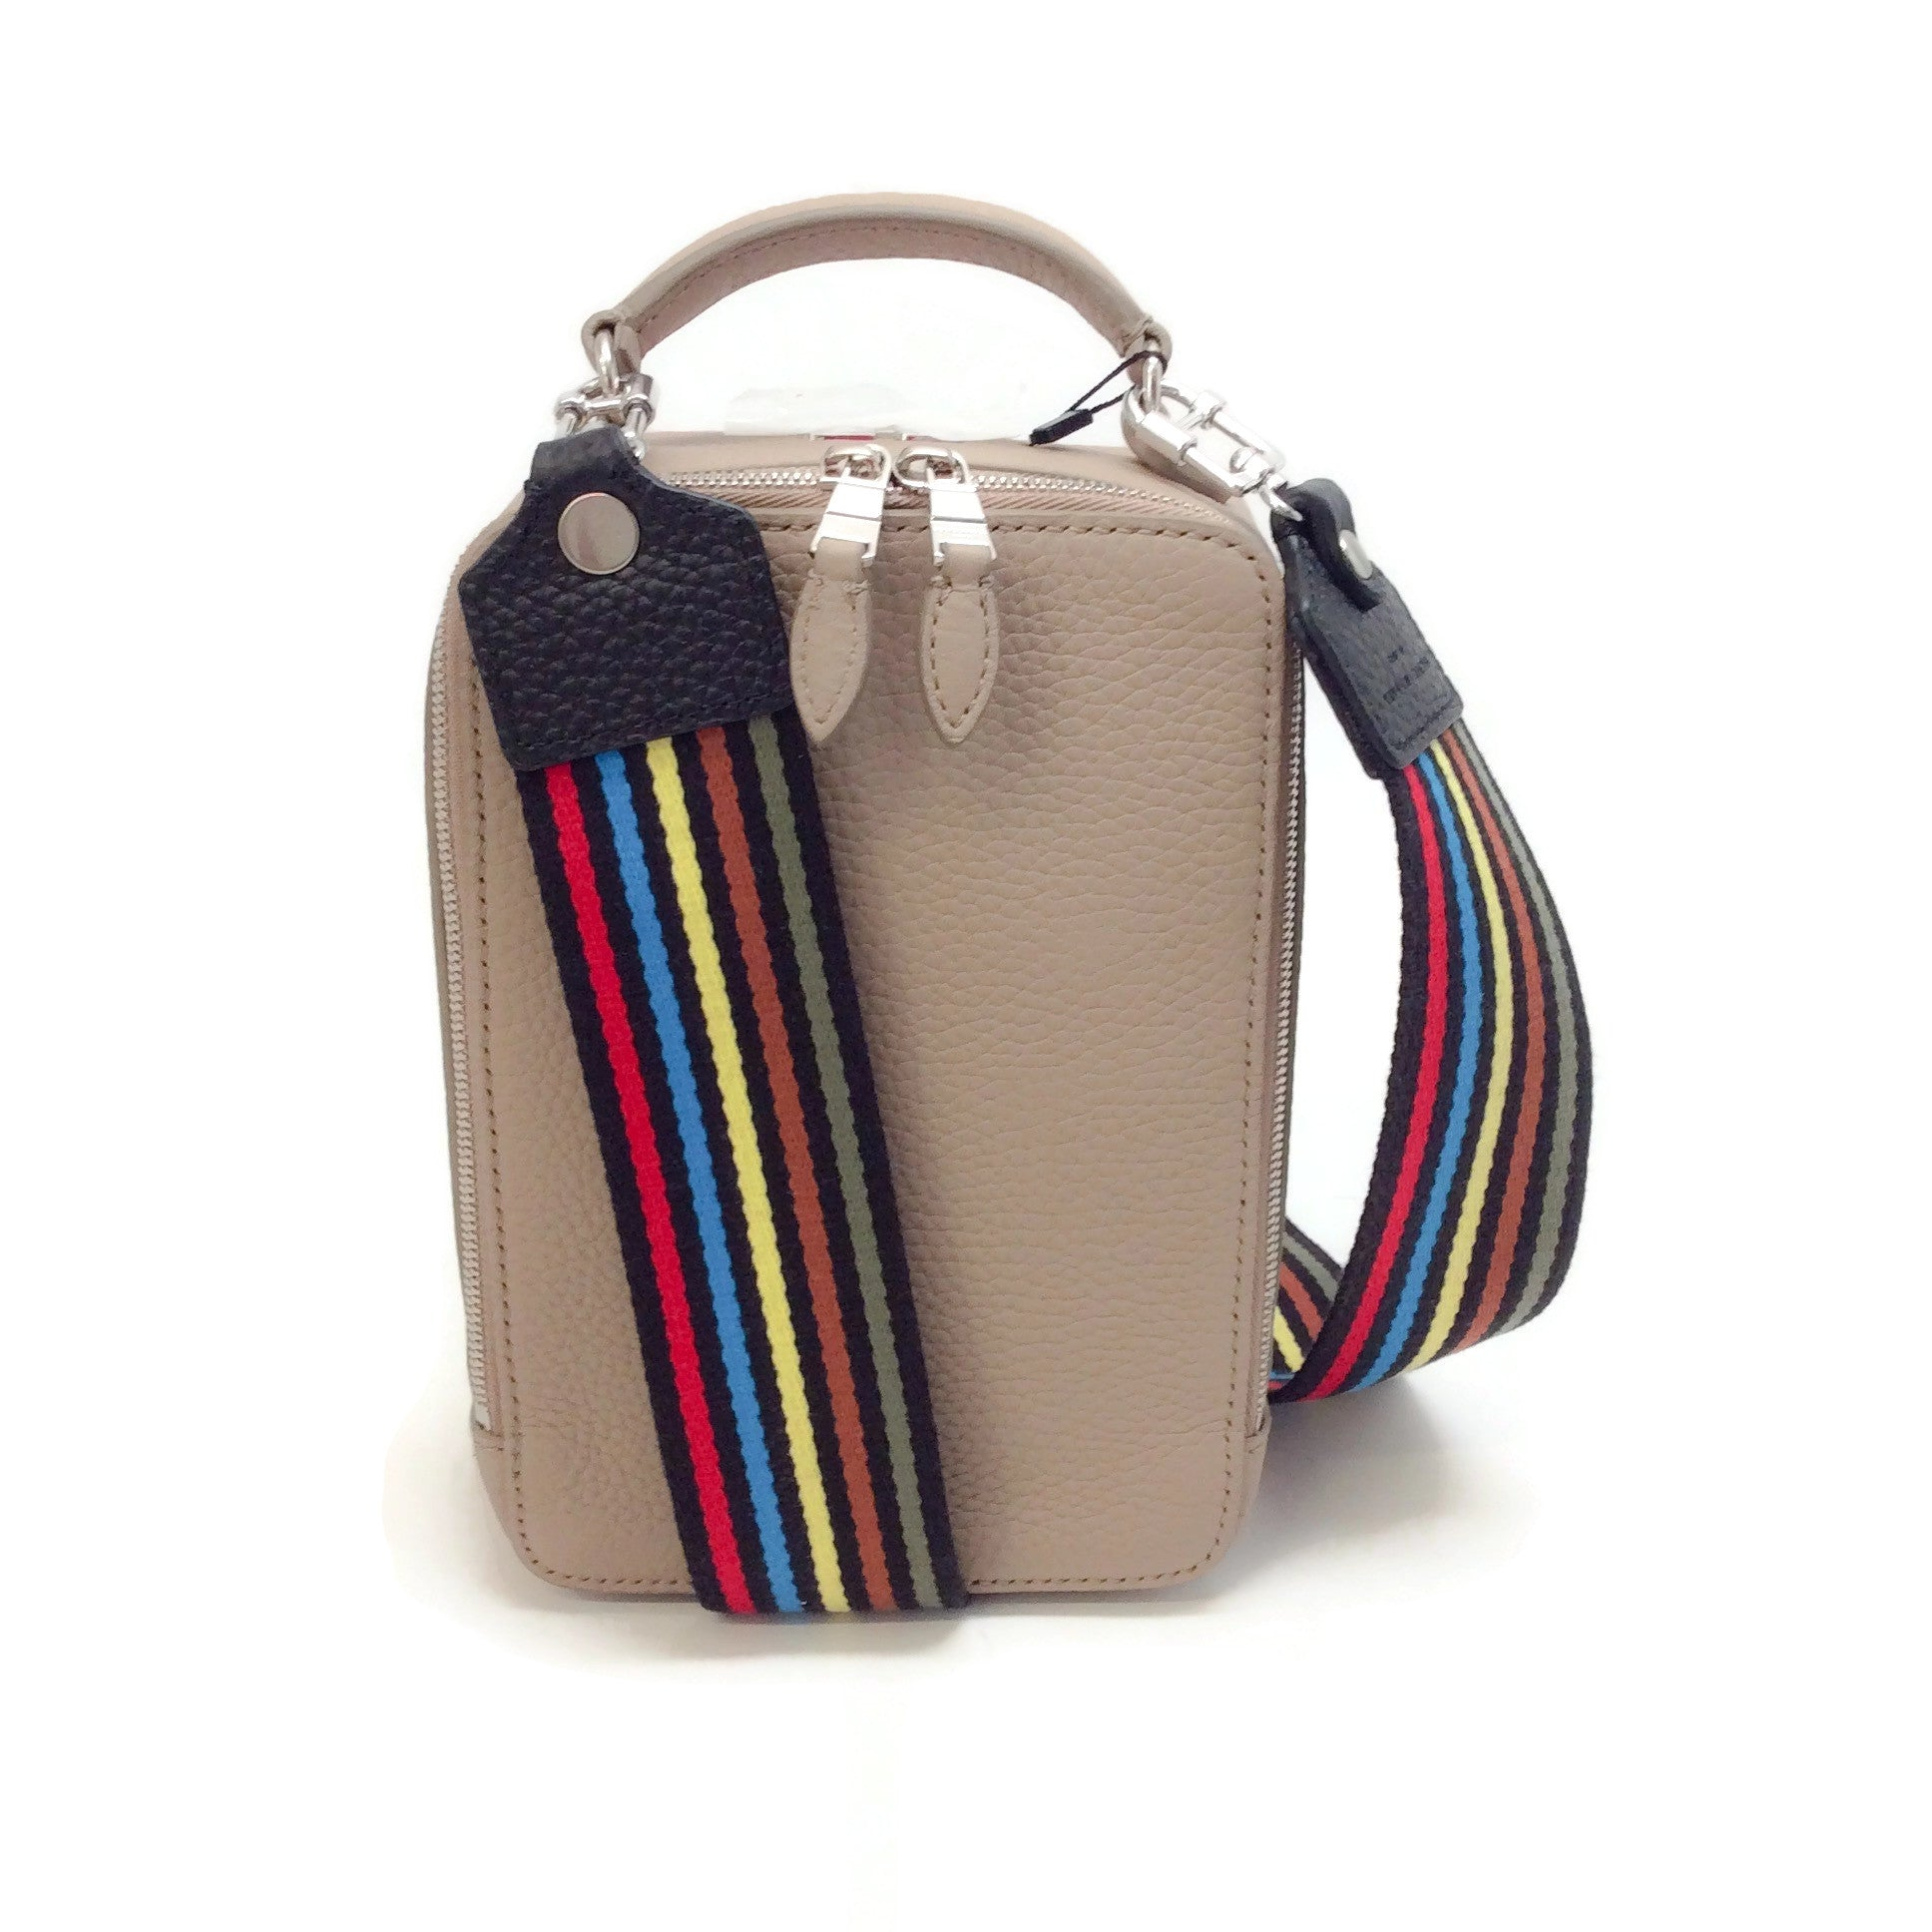 Sonia Rykiel Box Taupe Leather Cross Body Bag